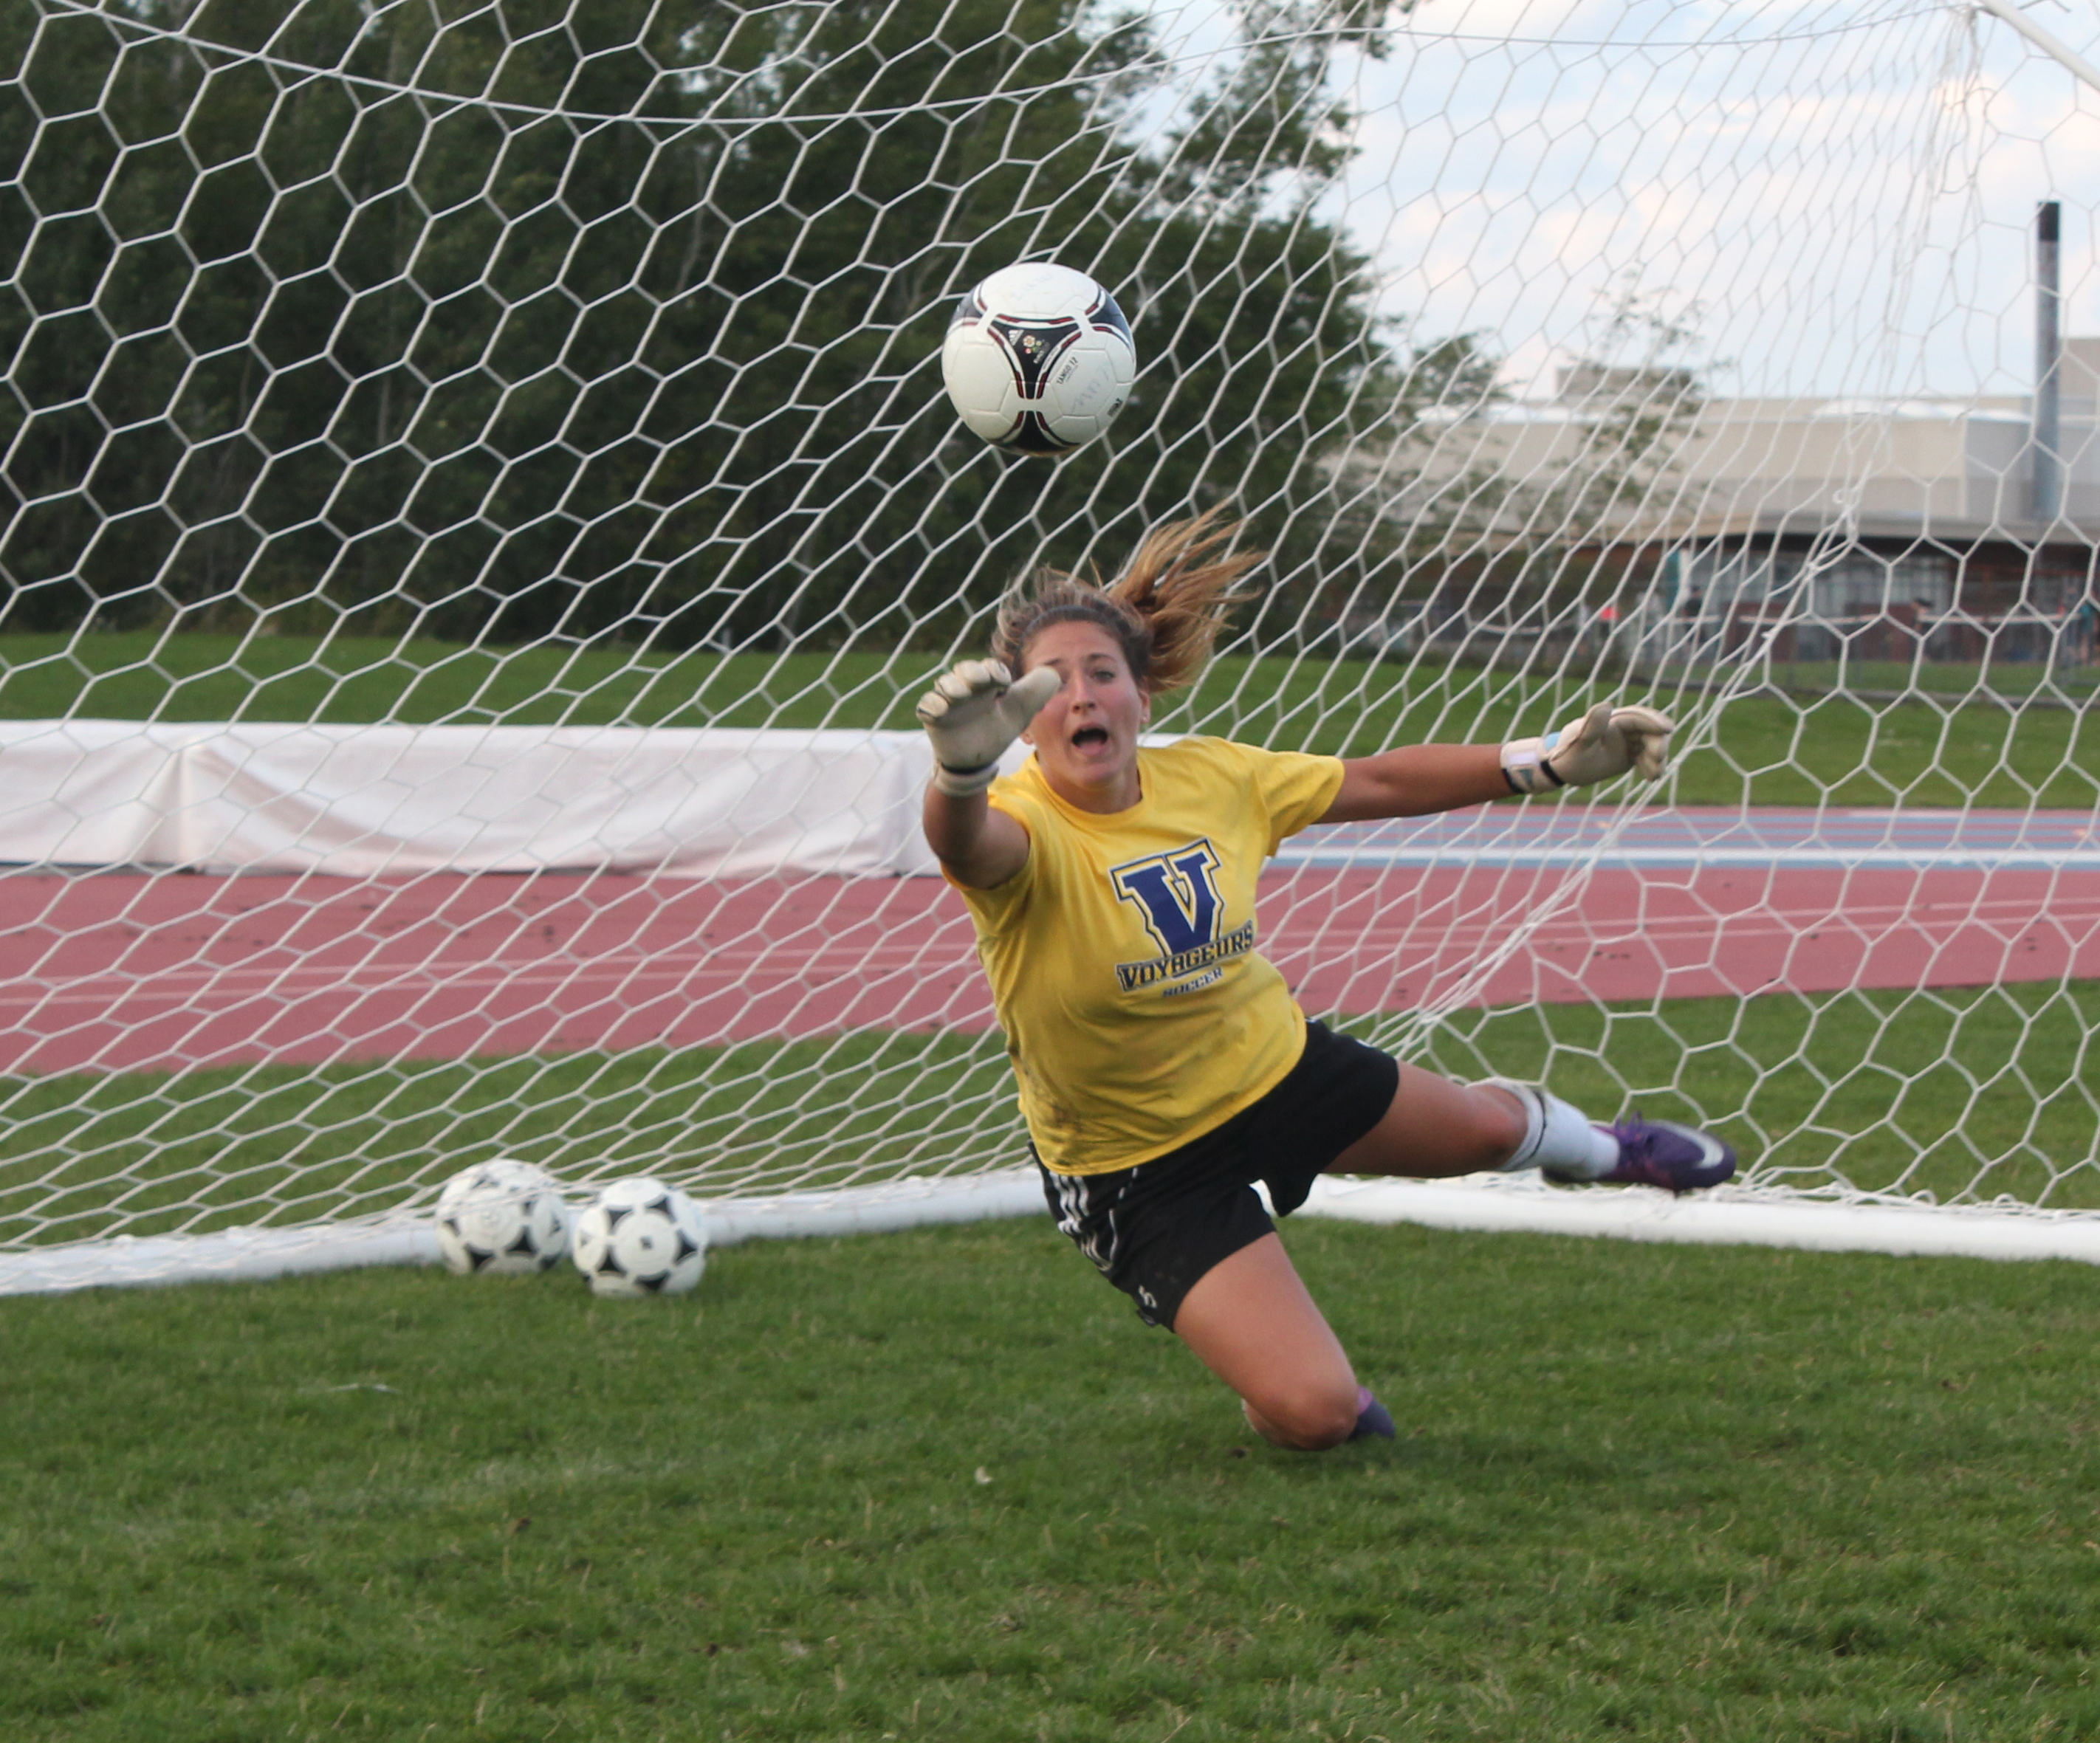 Dina Mandolesi, goalkeeper for Laurentian and fourth-year student, making a save at practice on Sept. 9. Mandolesi helped the Voyageurs secure a 1-0 win versus RMC on Sept. 7 moving Laurentian's record to 2-1-1 on the season.